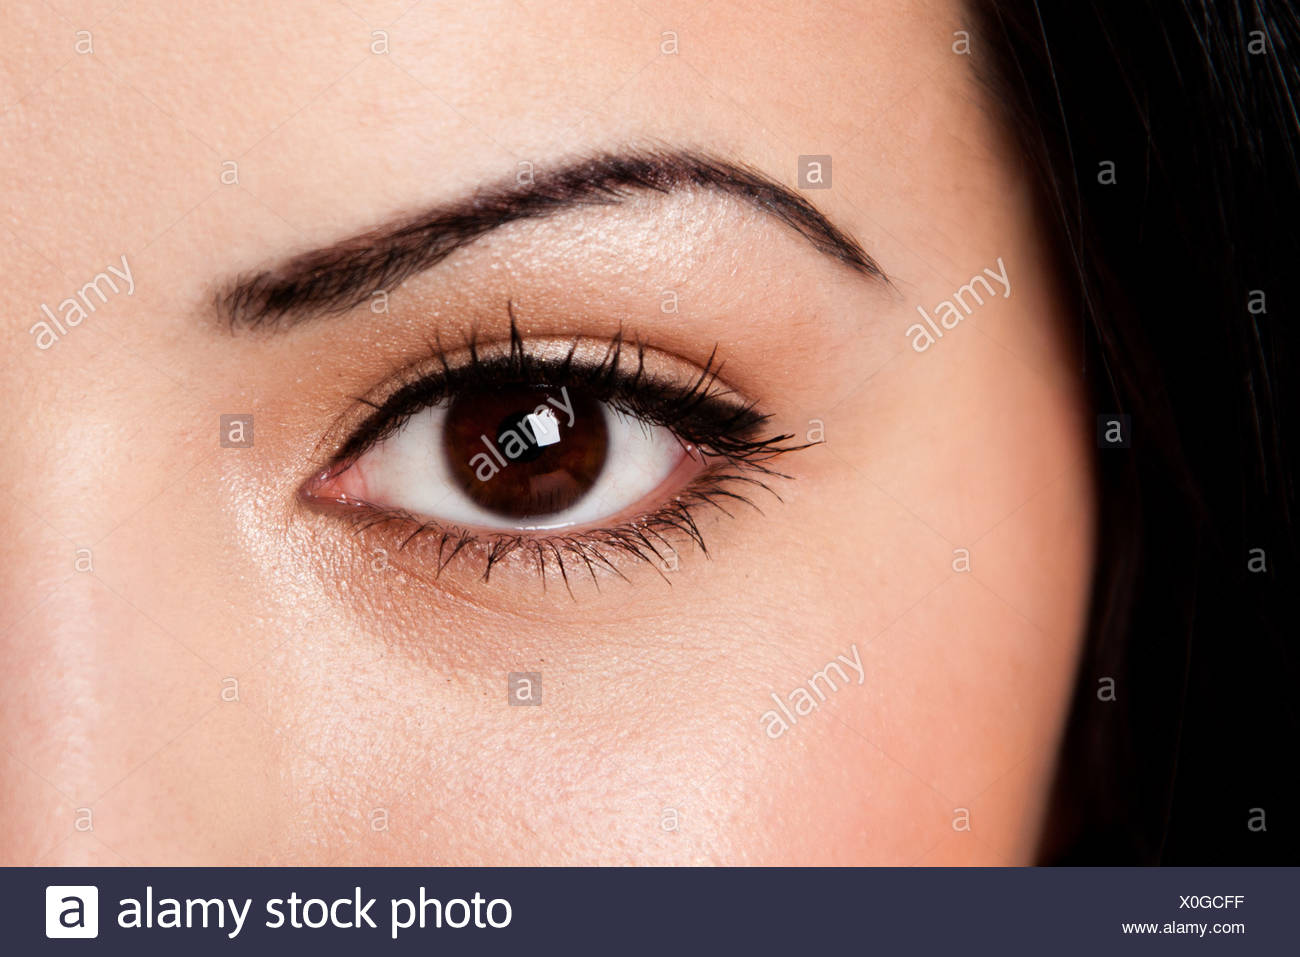 Beautiful female eyebrow and brown eye with lashes on fair skin. - Stock Image